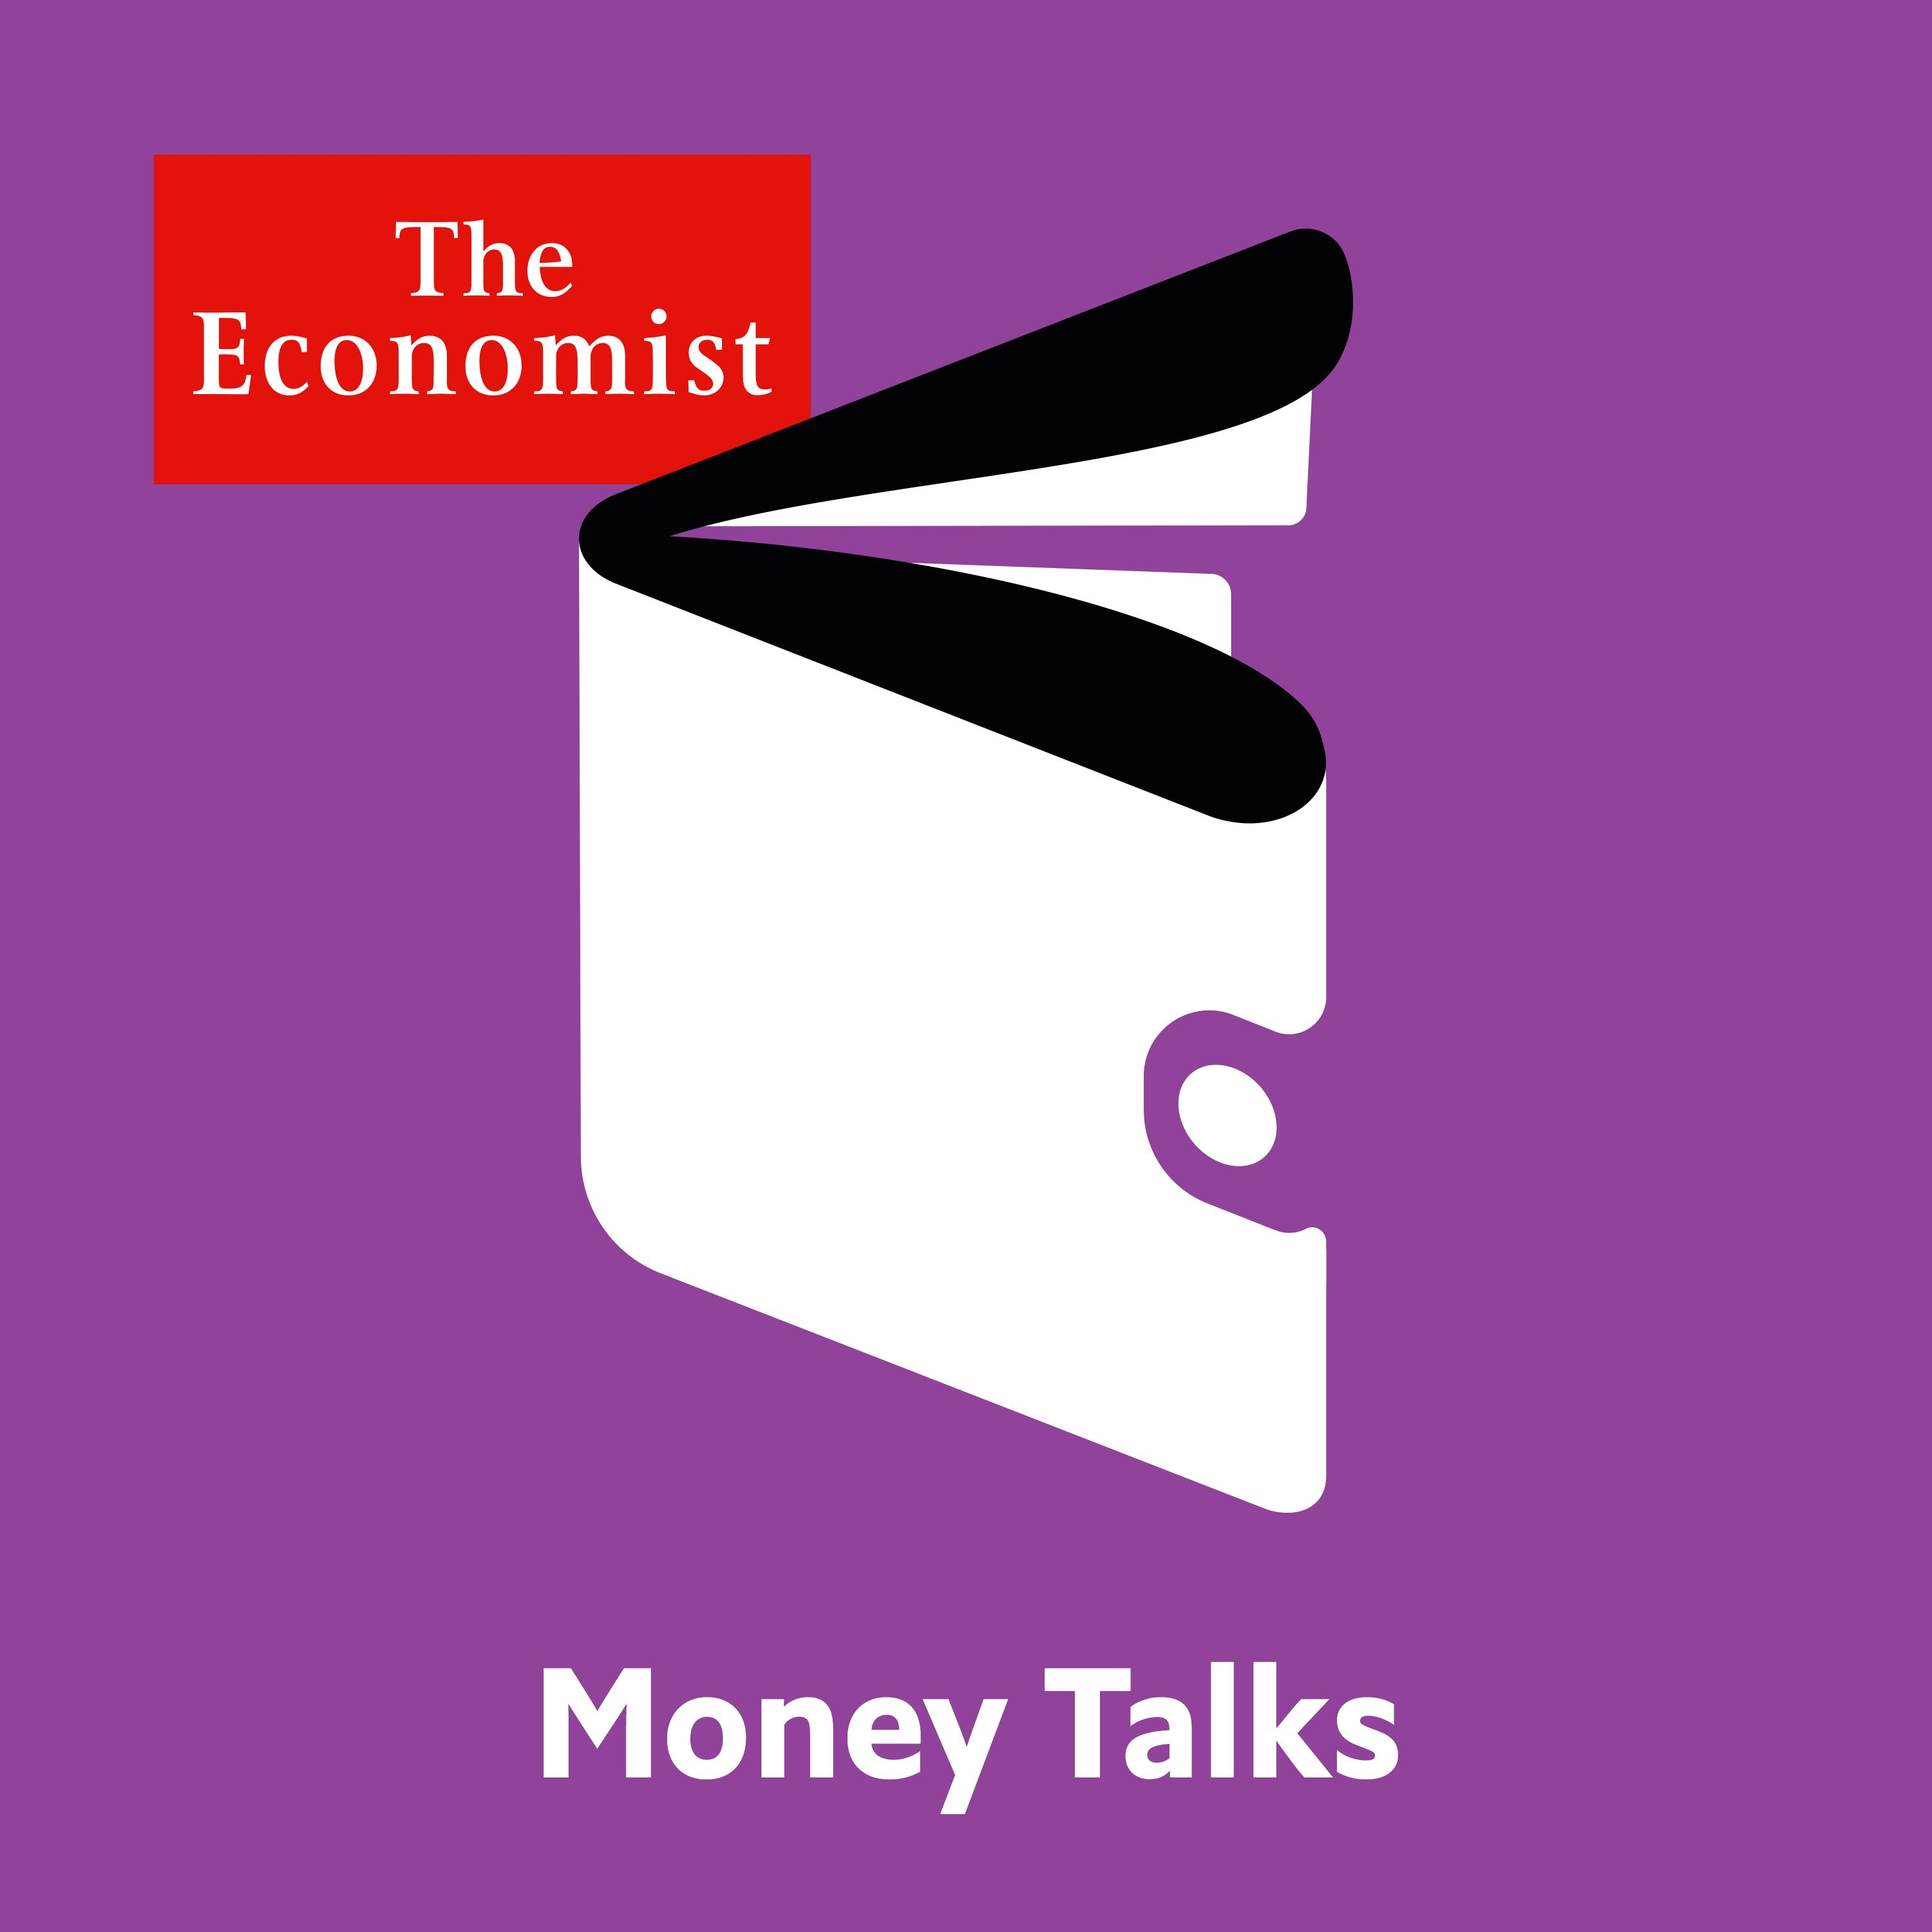 Money Talks: Power in the 21st century